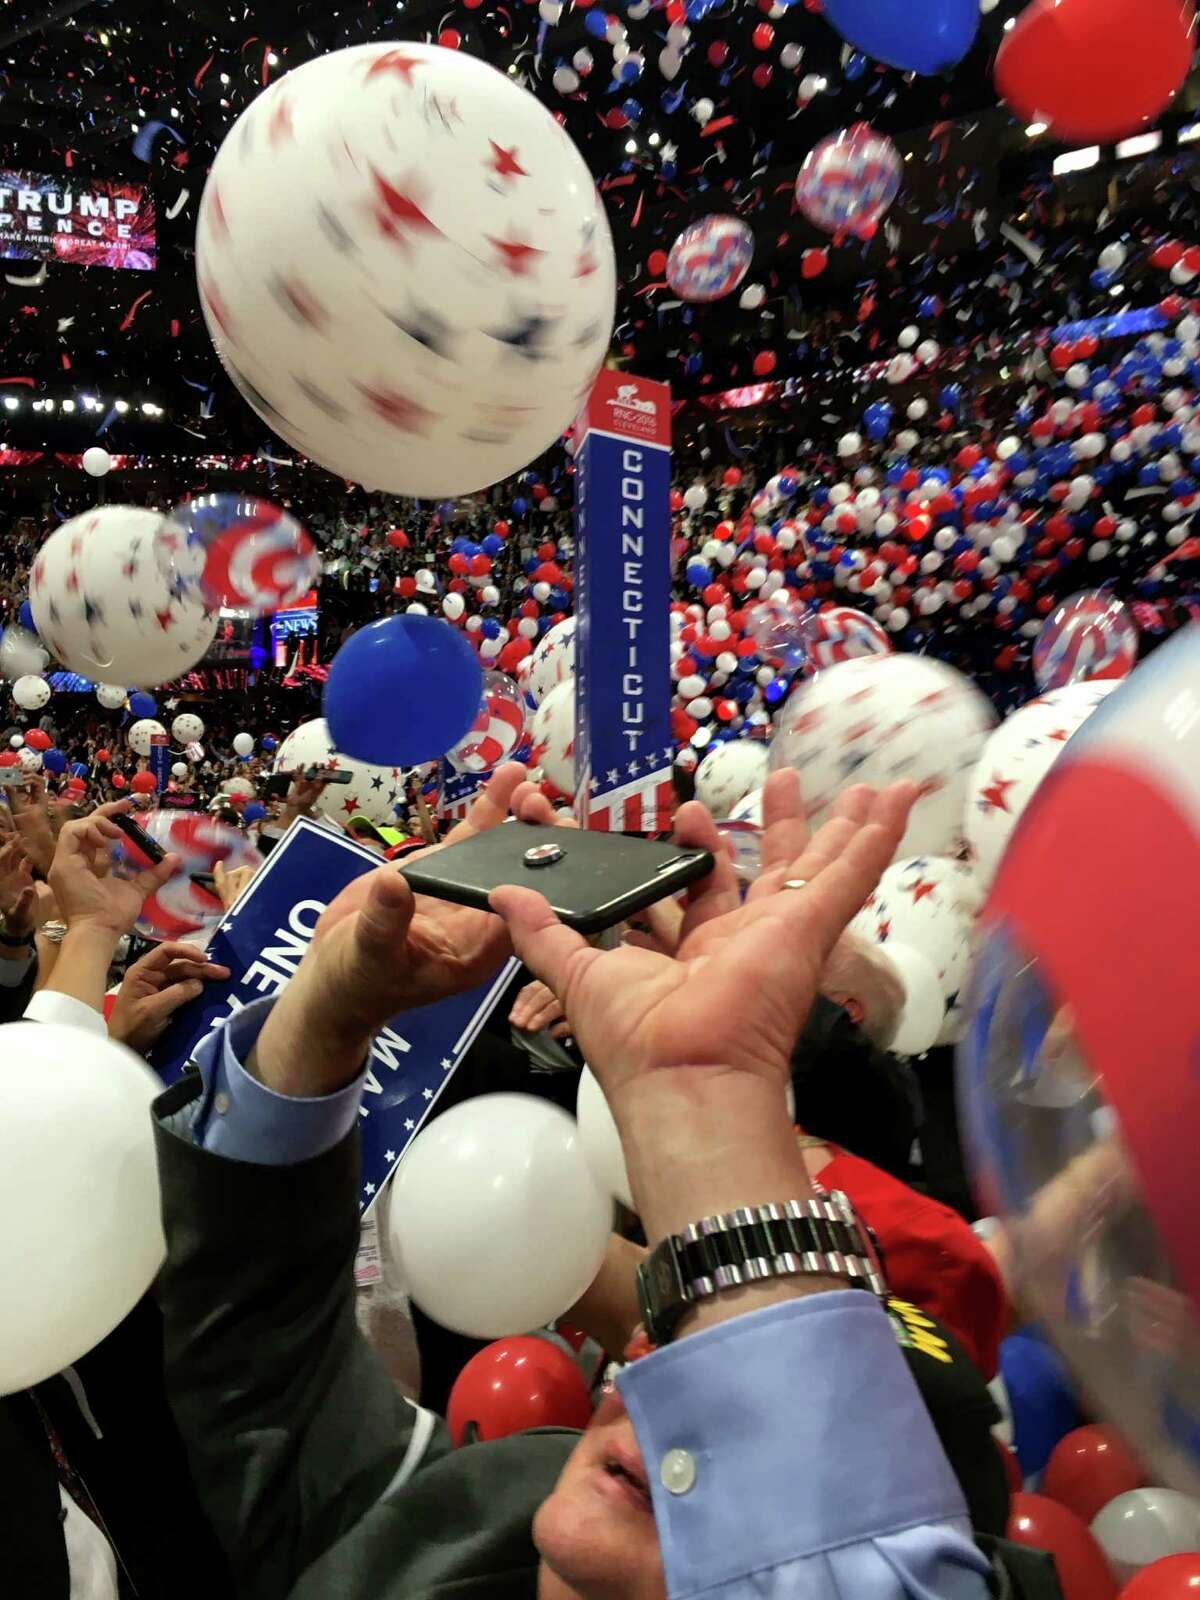 The Connecticut delegation celebrates at the end of the GOP Convention at Quicken Loans Arena in Cleveland, OH on Thursday, July 21, 2016.